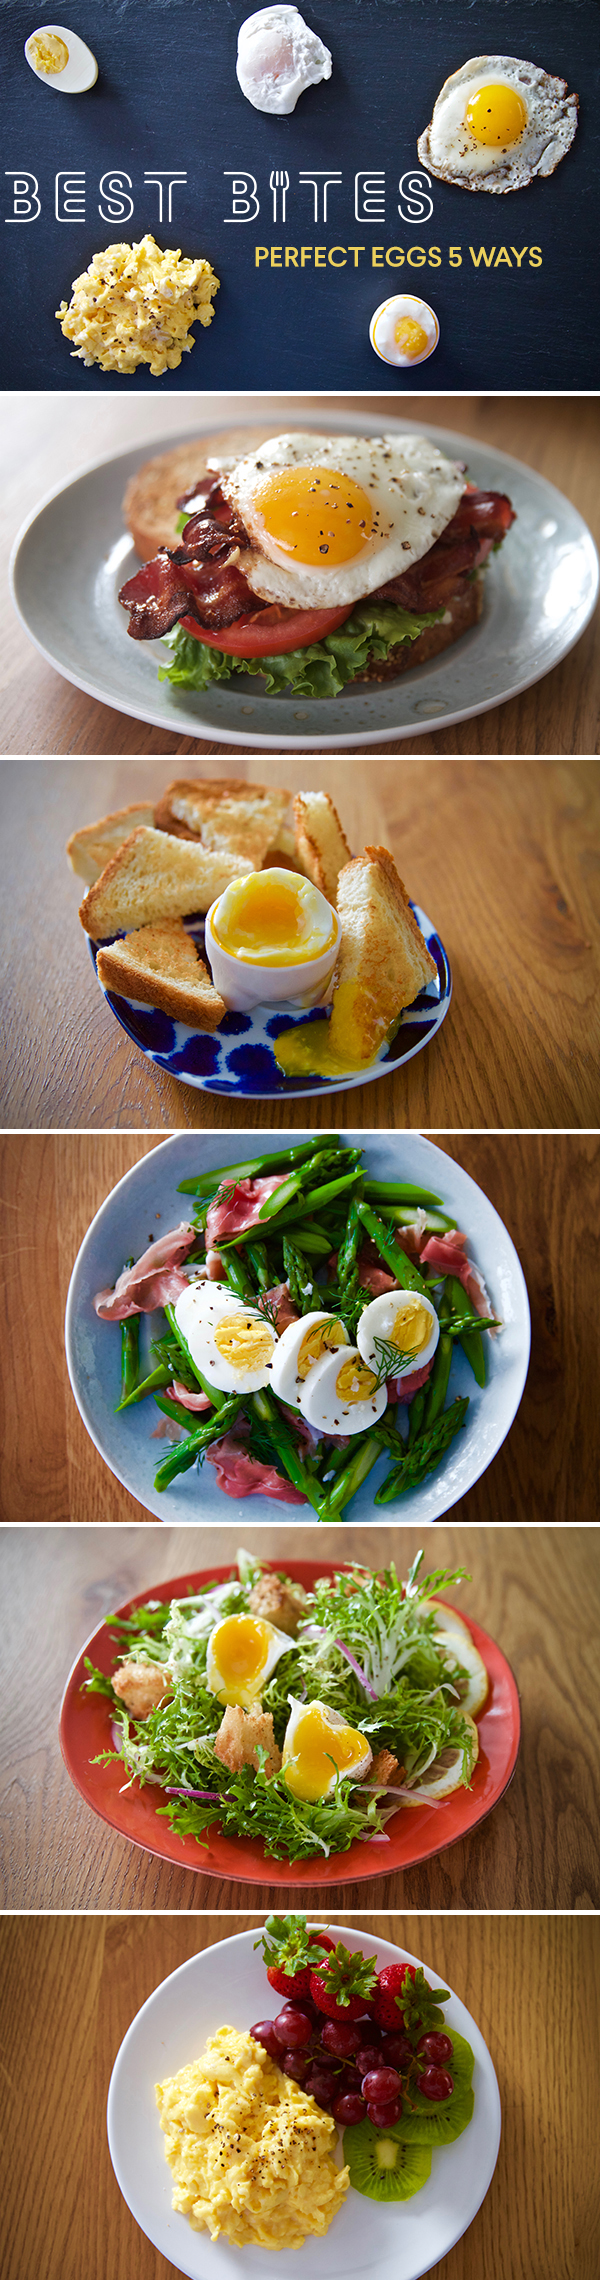 Cook perfect eggs 5 ways